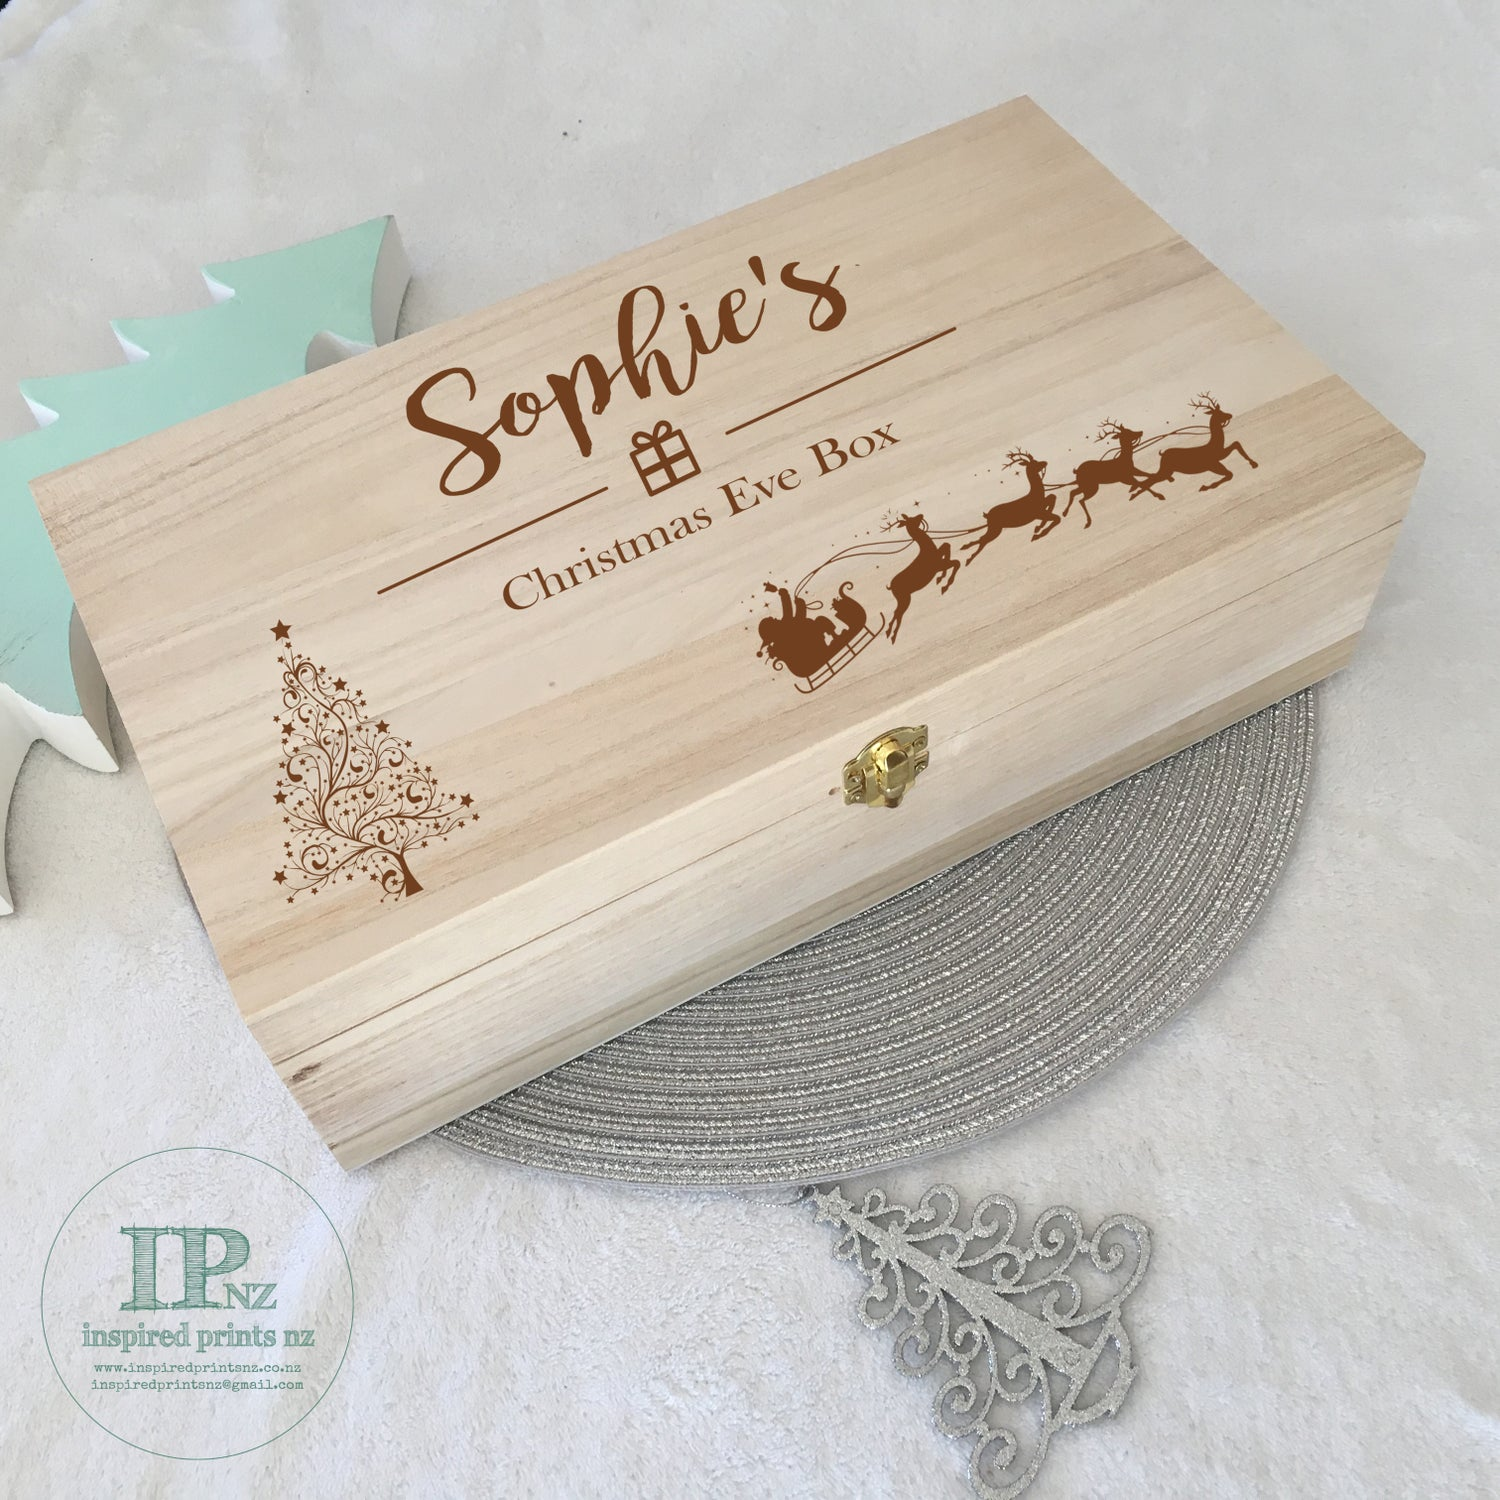 Image of DUE END OF MARCH Keepsake Box Hinged Lid & Latch